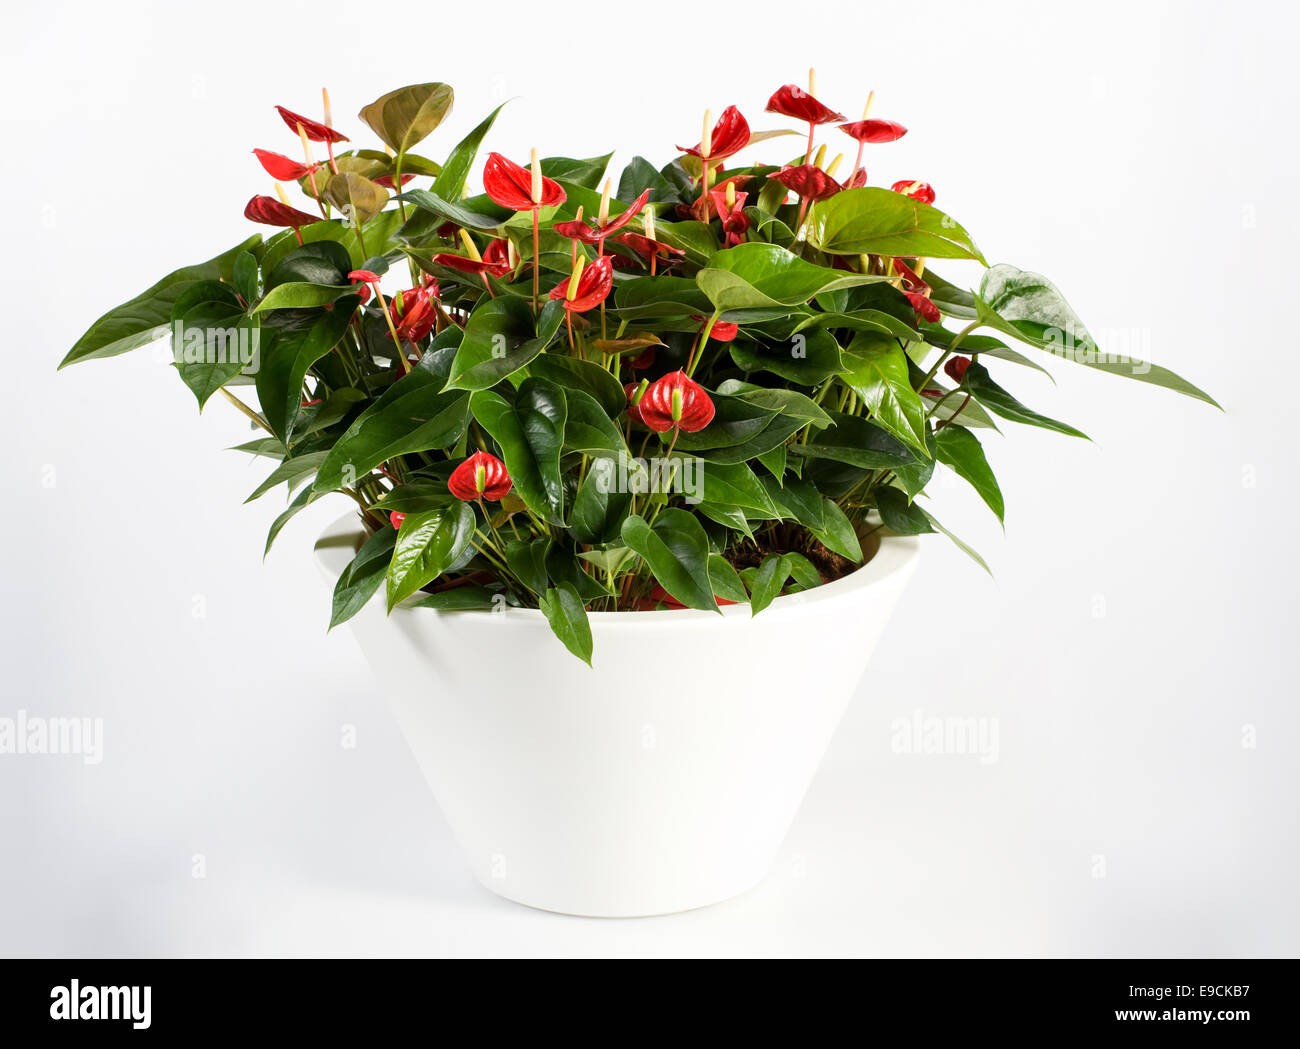 anthurium stockfotos anthurium bilder alamy. Black Bedroom Furniture Sets. Home Design Ideas